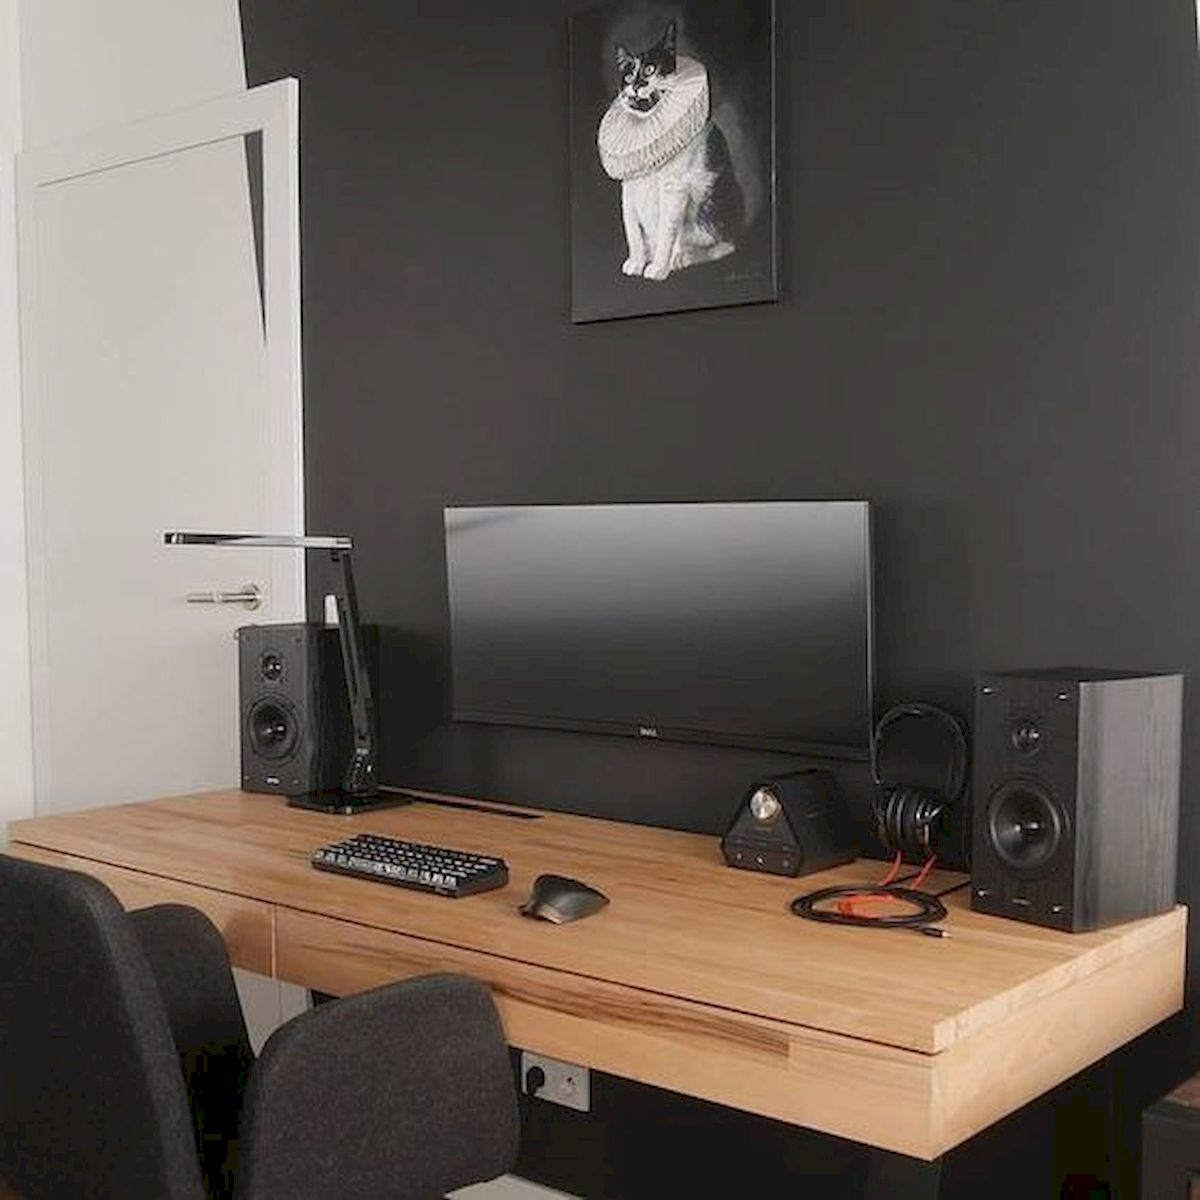 60 Magical DIY Computer Desk Gaming Design Ideas and Decor (36)